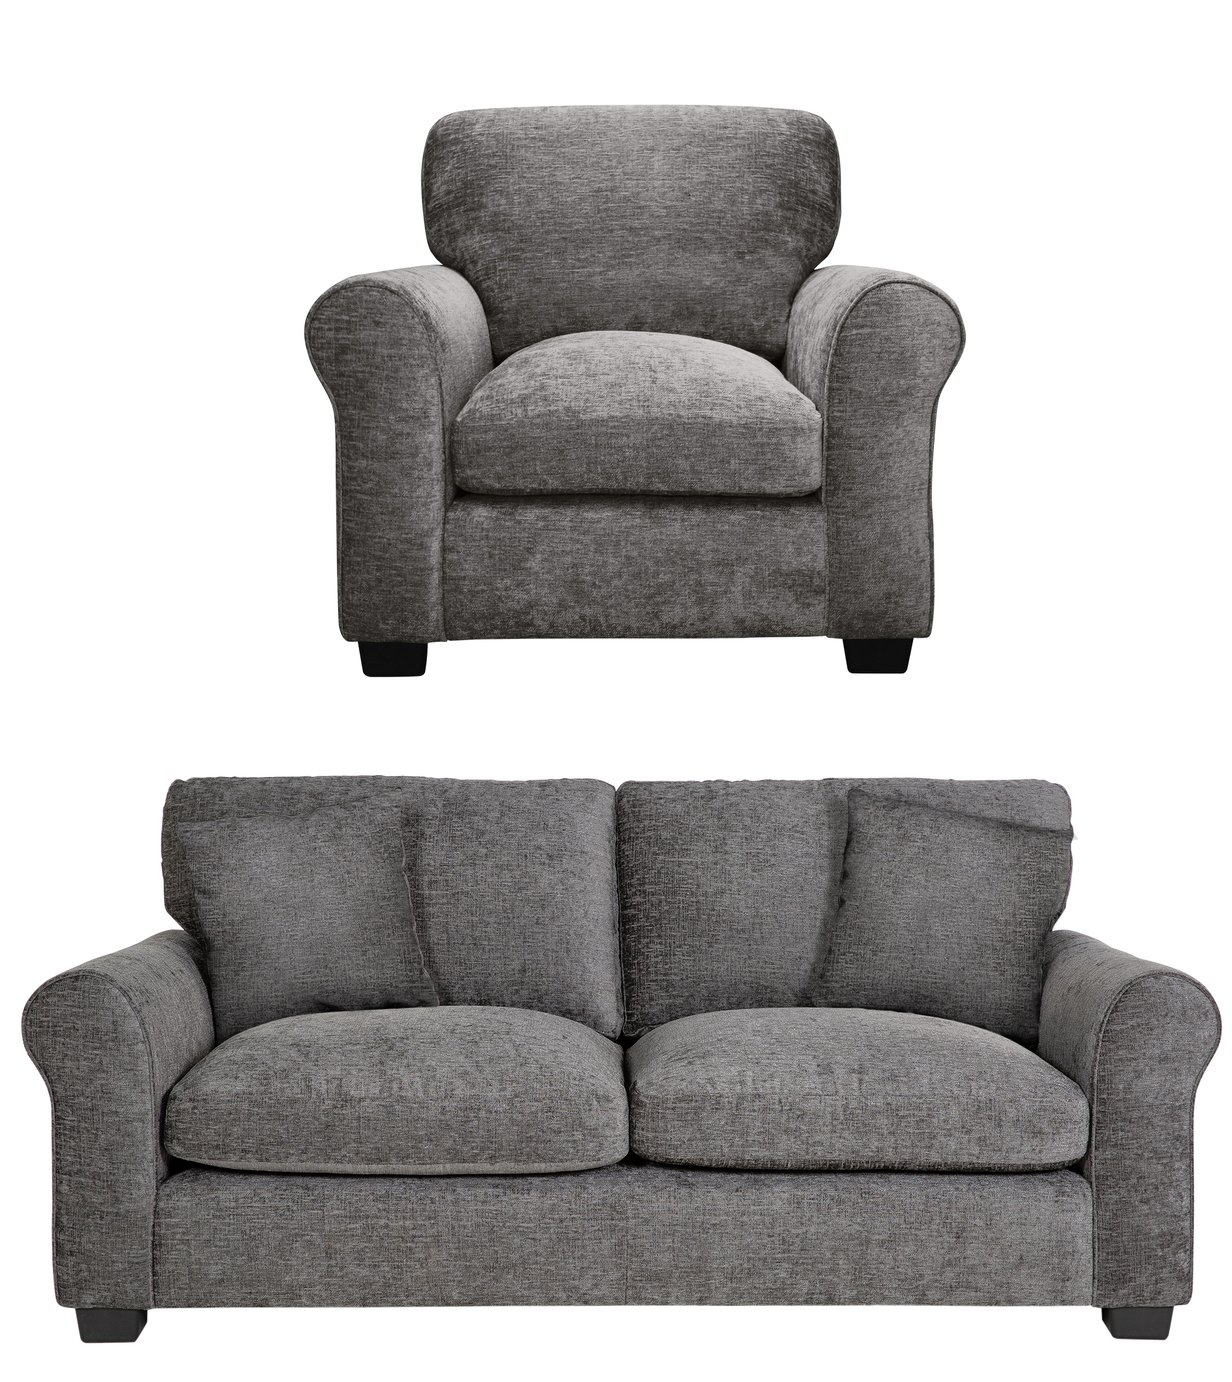 Argos Home Tammy Fabric Chair and 3 Seater Sofa - Charcoal from Argos Home